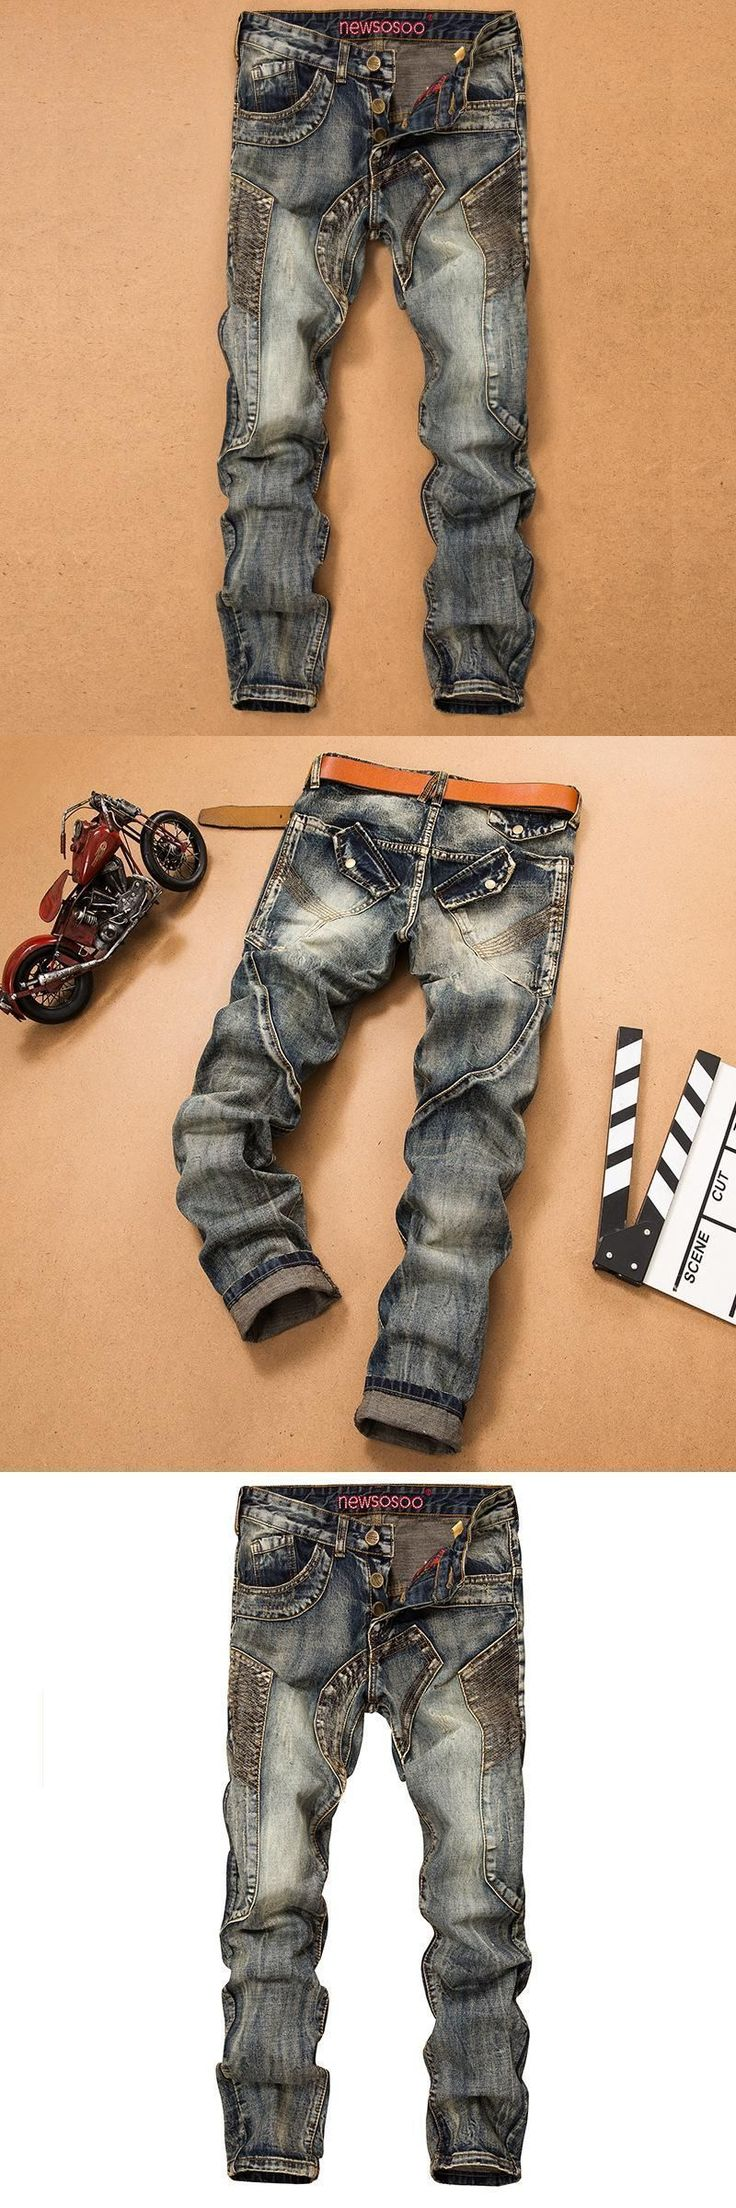 New arrival cheap men denim ripped jeans street style american locomotive biker jeans hip hop distressed